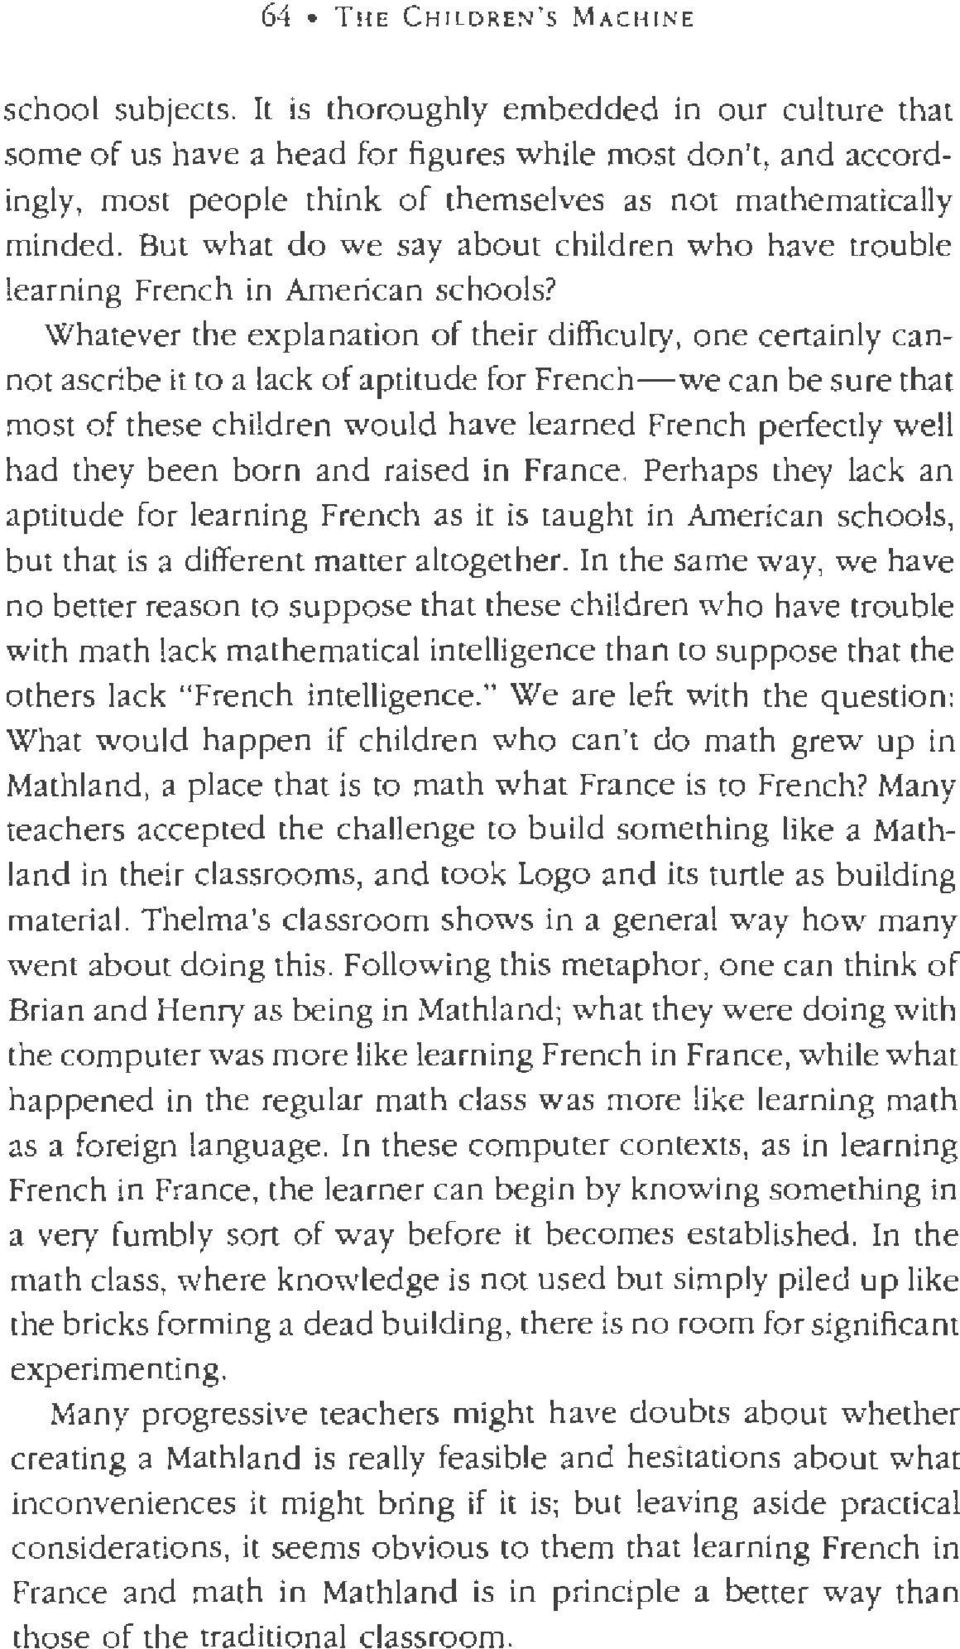 But what do we say about children who have trouble learning French in American schools?